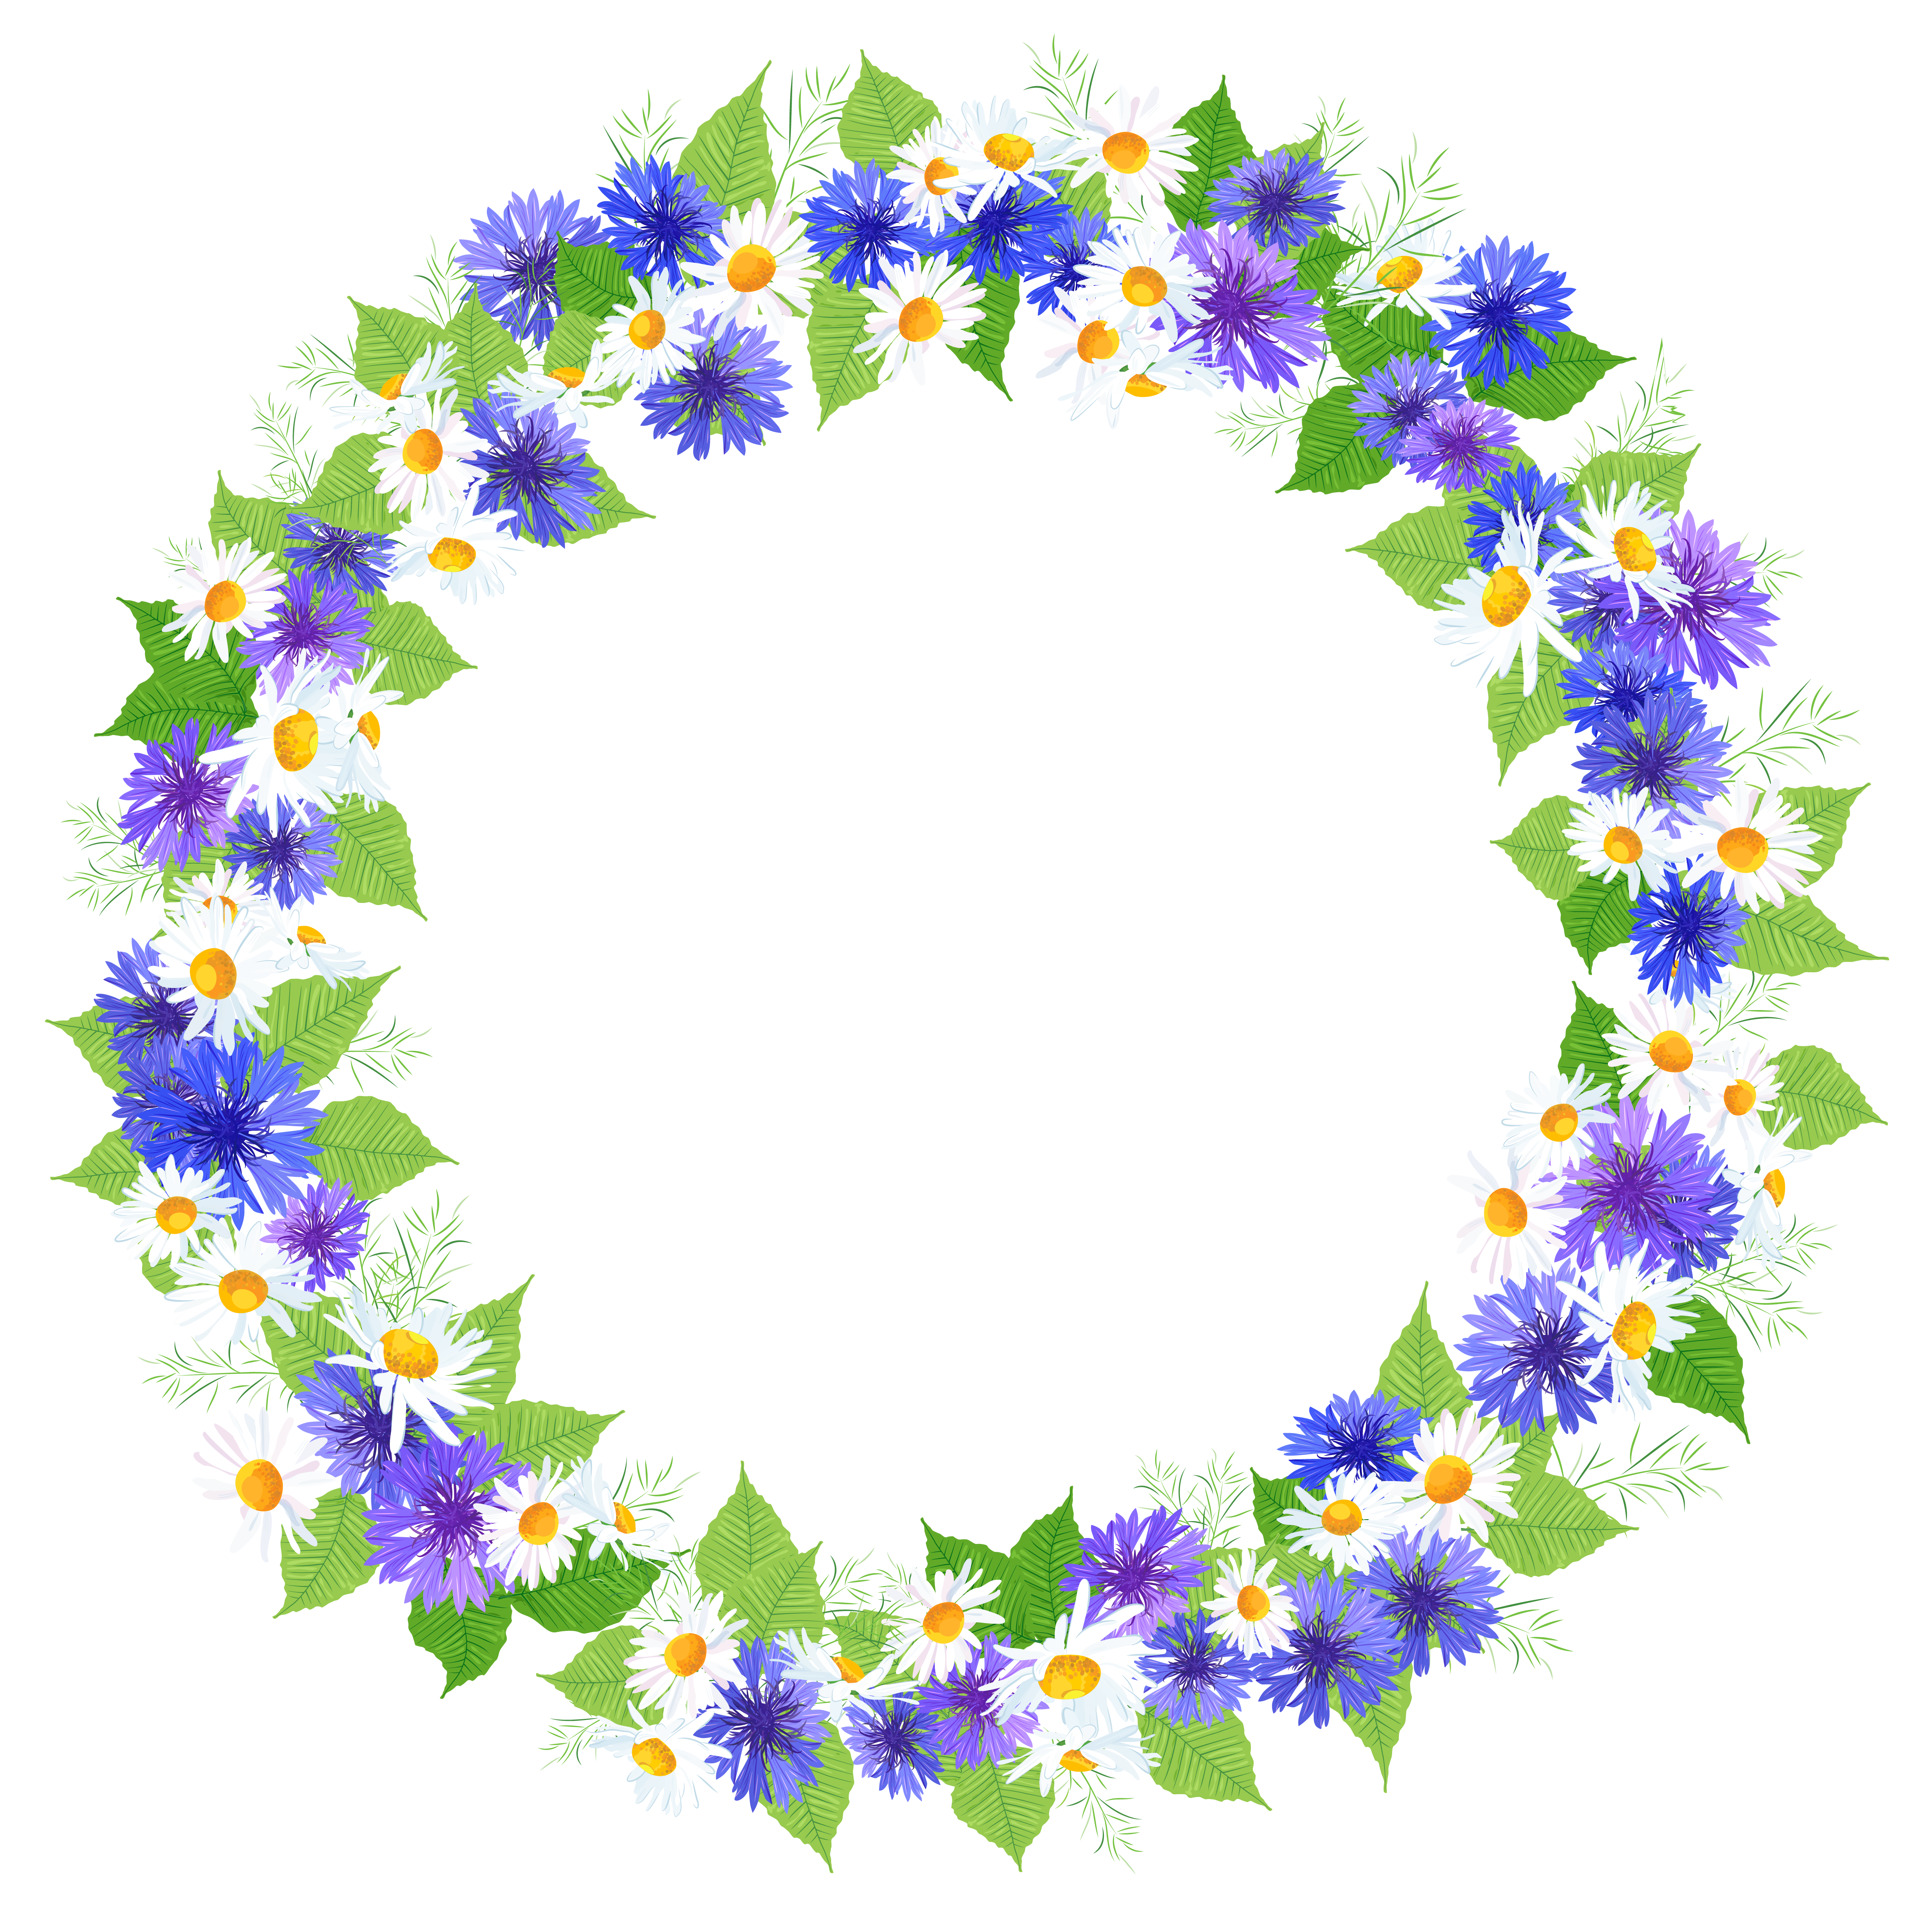 Circle flower clipart image royalty free library Floral Round Decoration PNG Clipart Image | Gallery Yopriceville ... image royalty free library